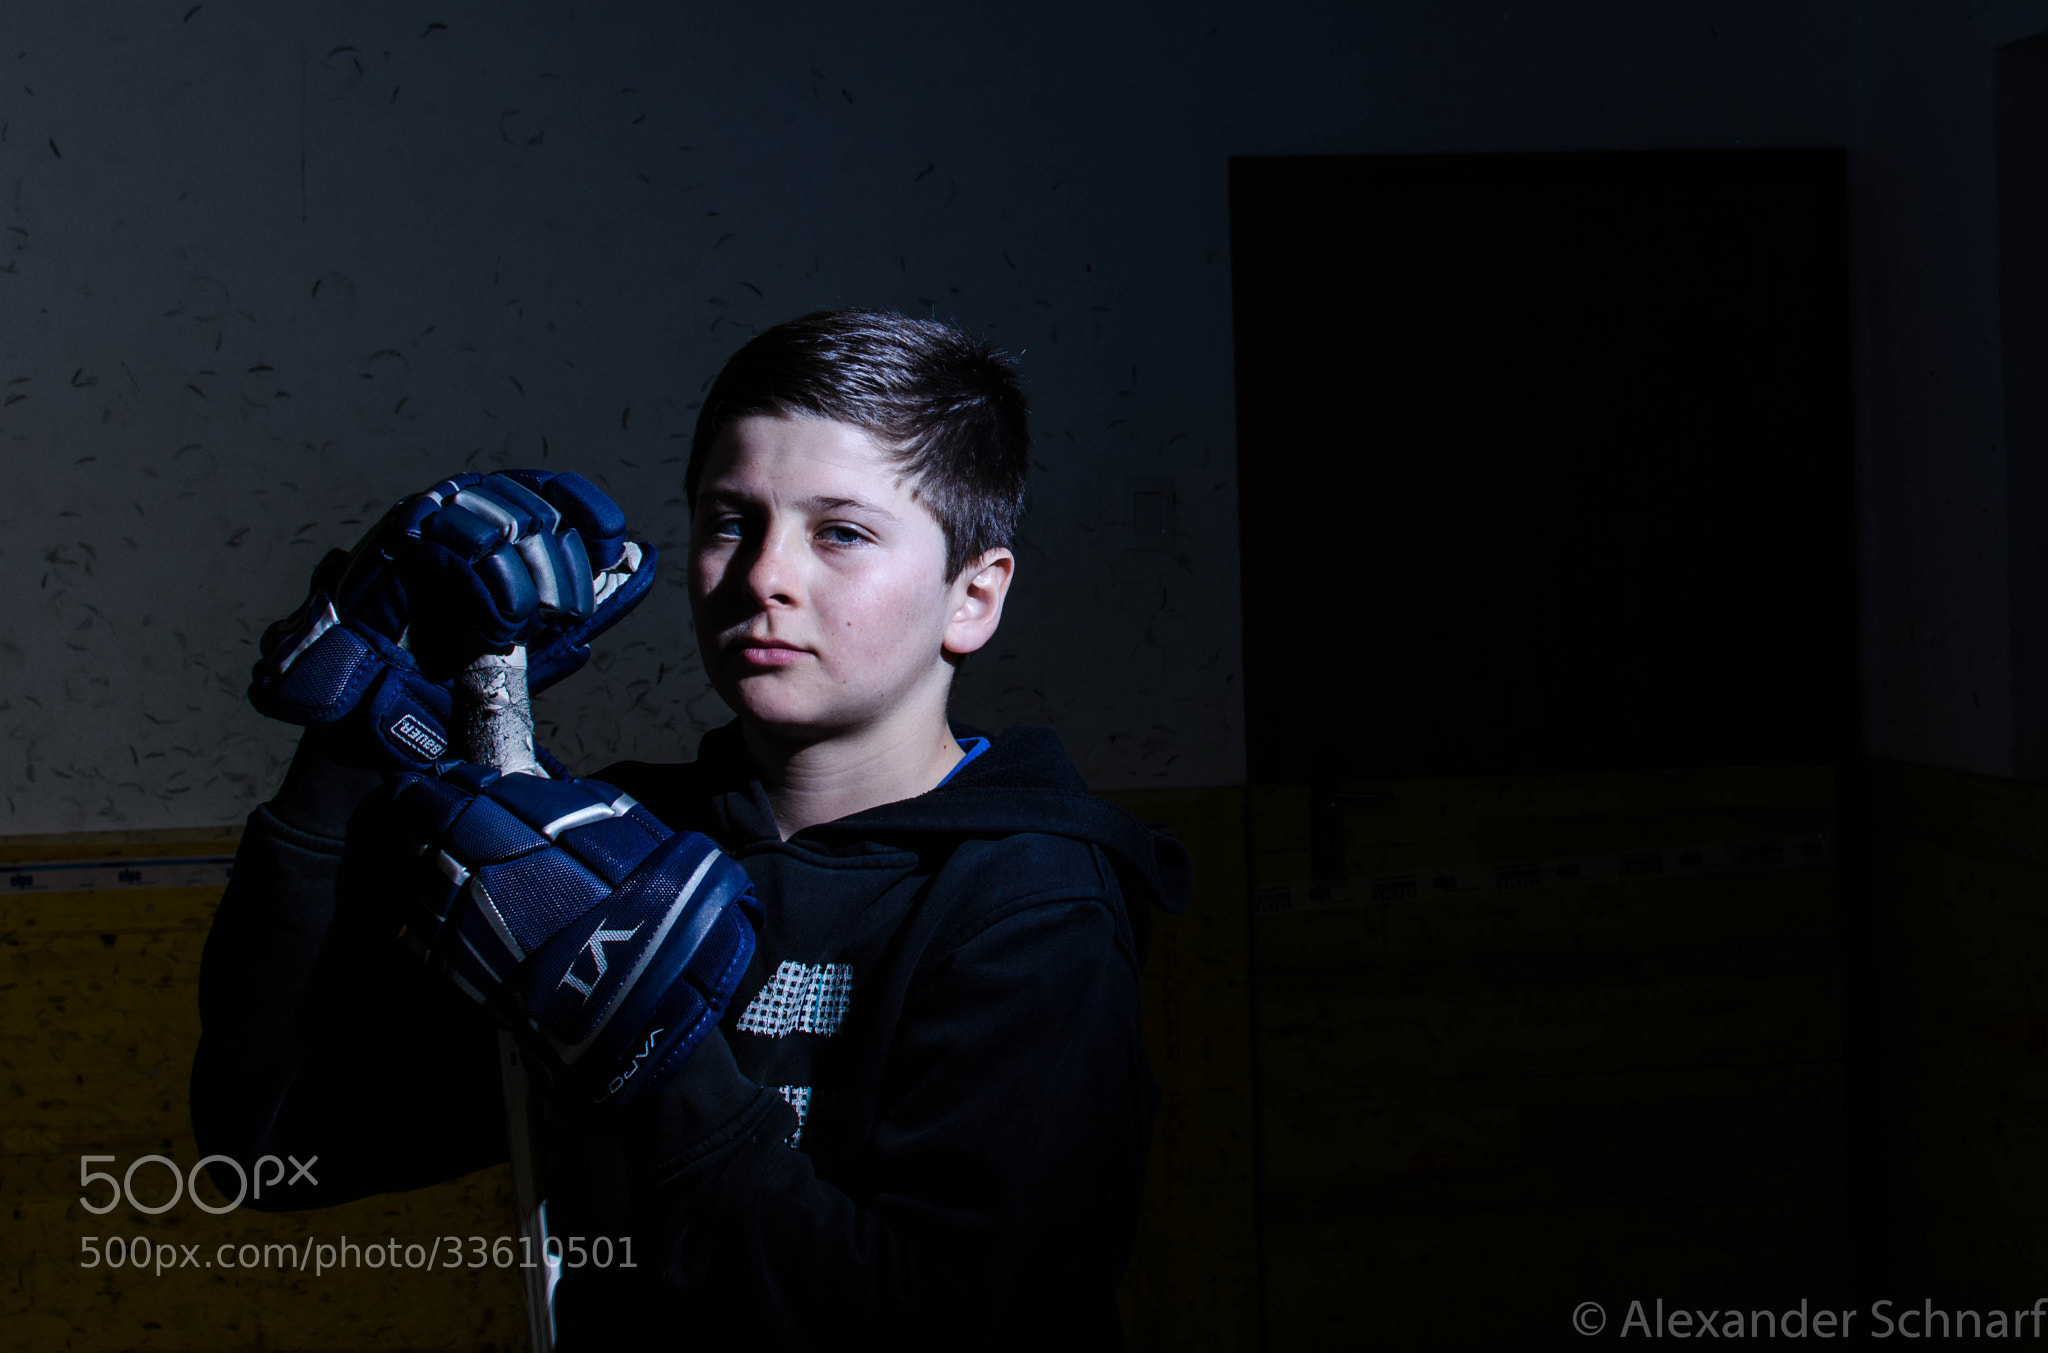 Photograph HockeyBoy by Alexander Schnarf on 500px